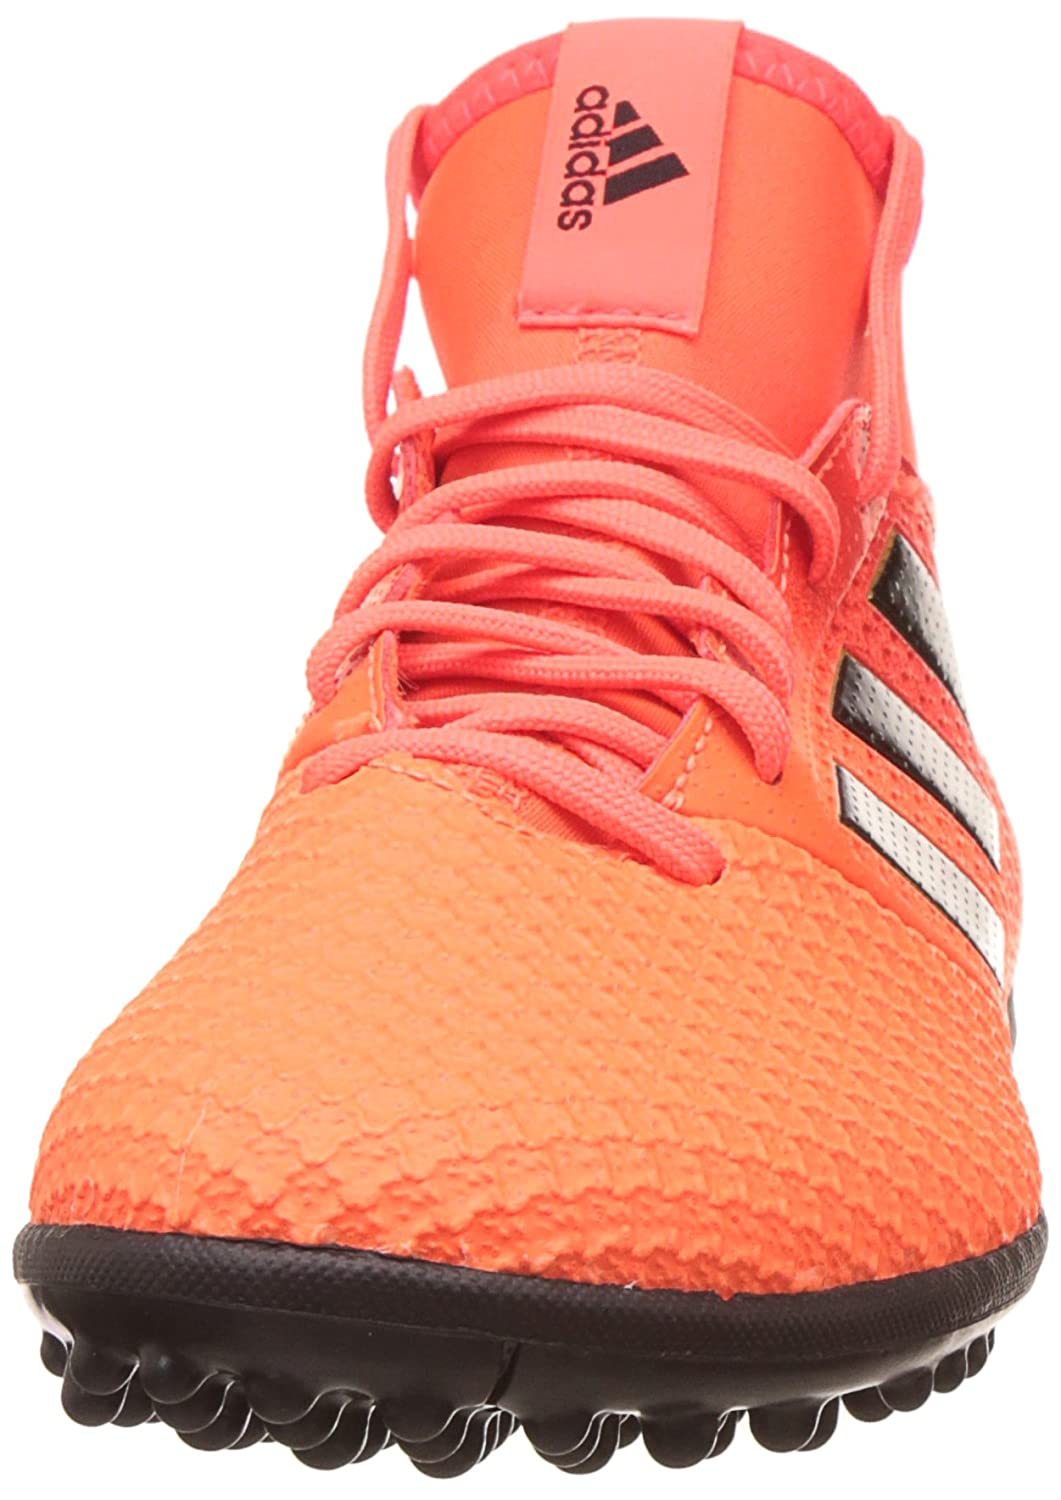 adidas ace 17.3 tf orange